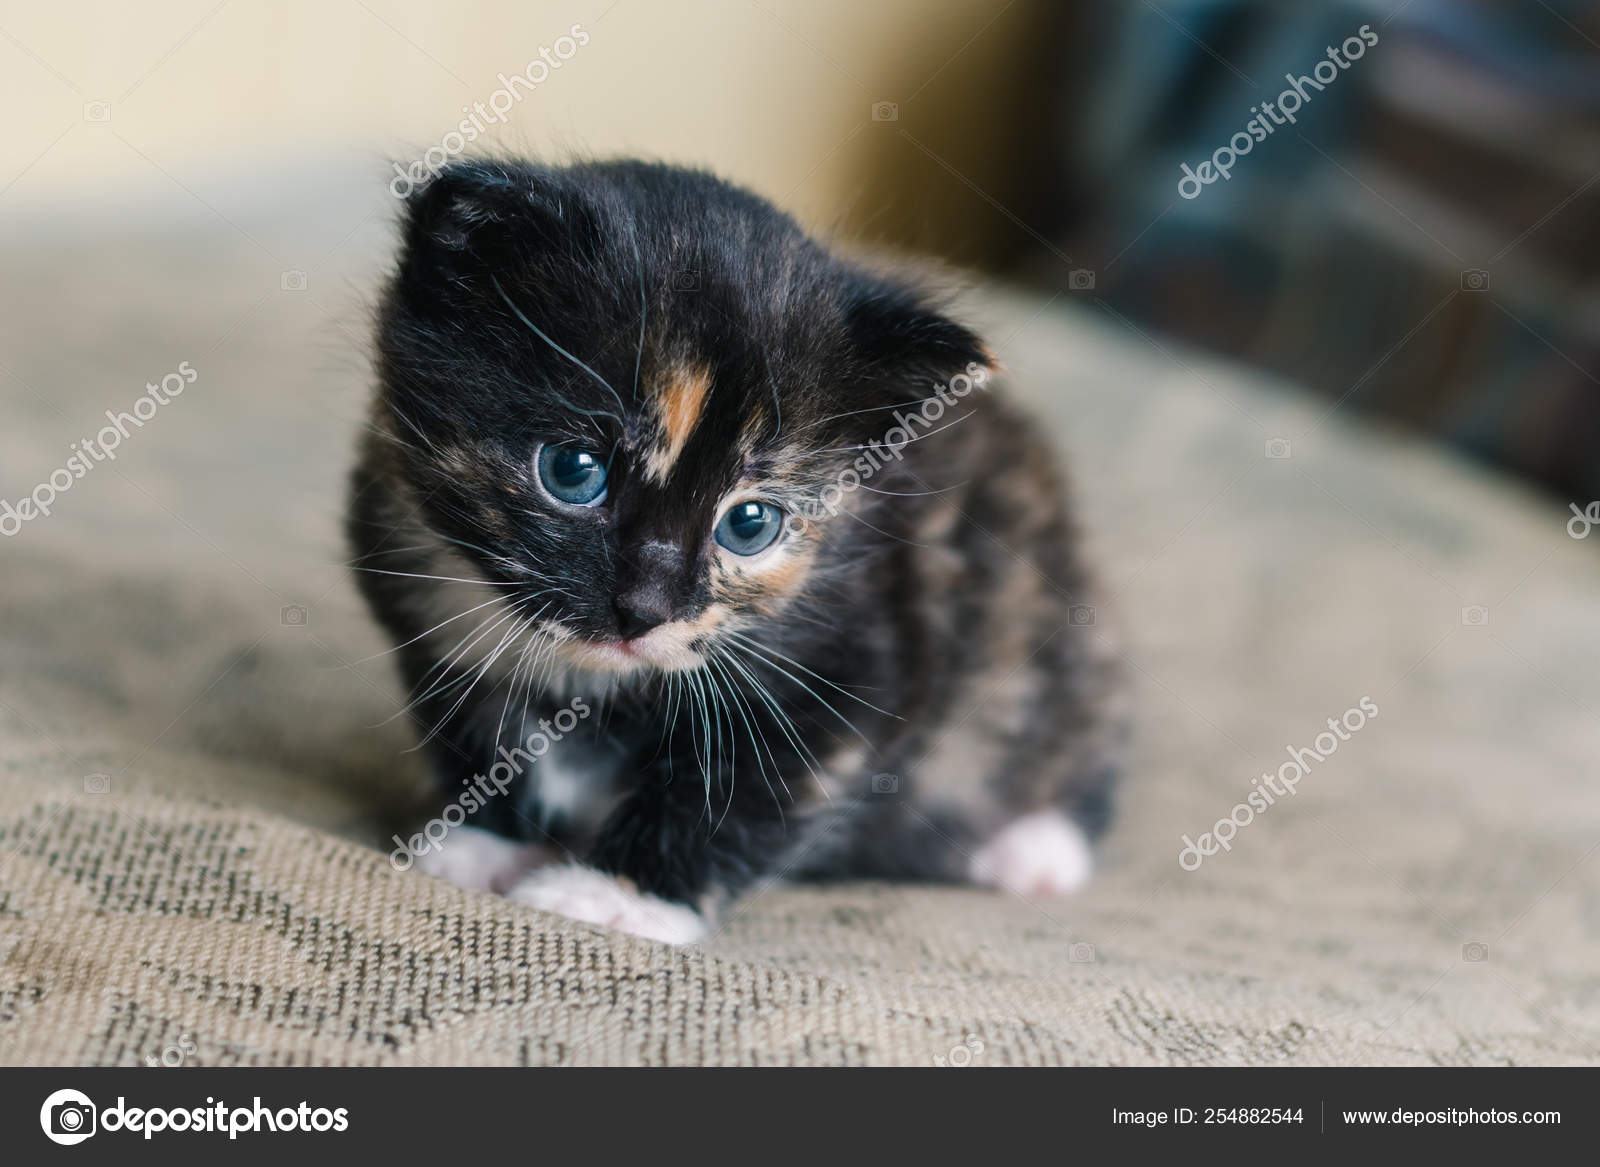 Little Beautiful Black Cat White Red Spots Blue Eyes Sofa Stock Photo C Marynatrusava 254882544